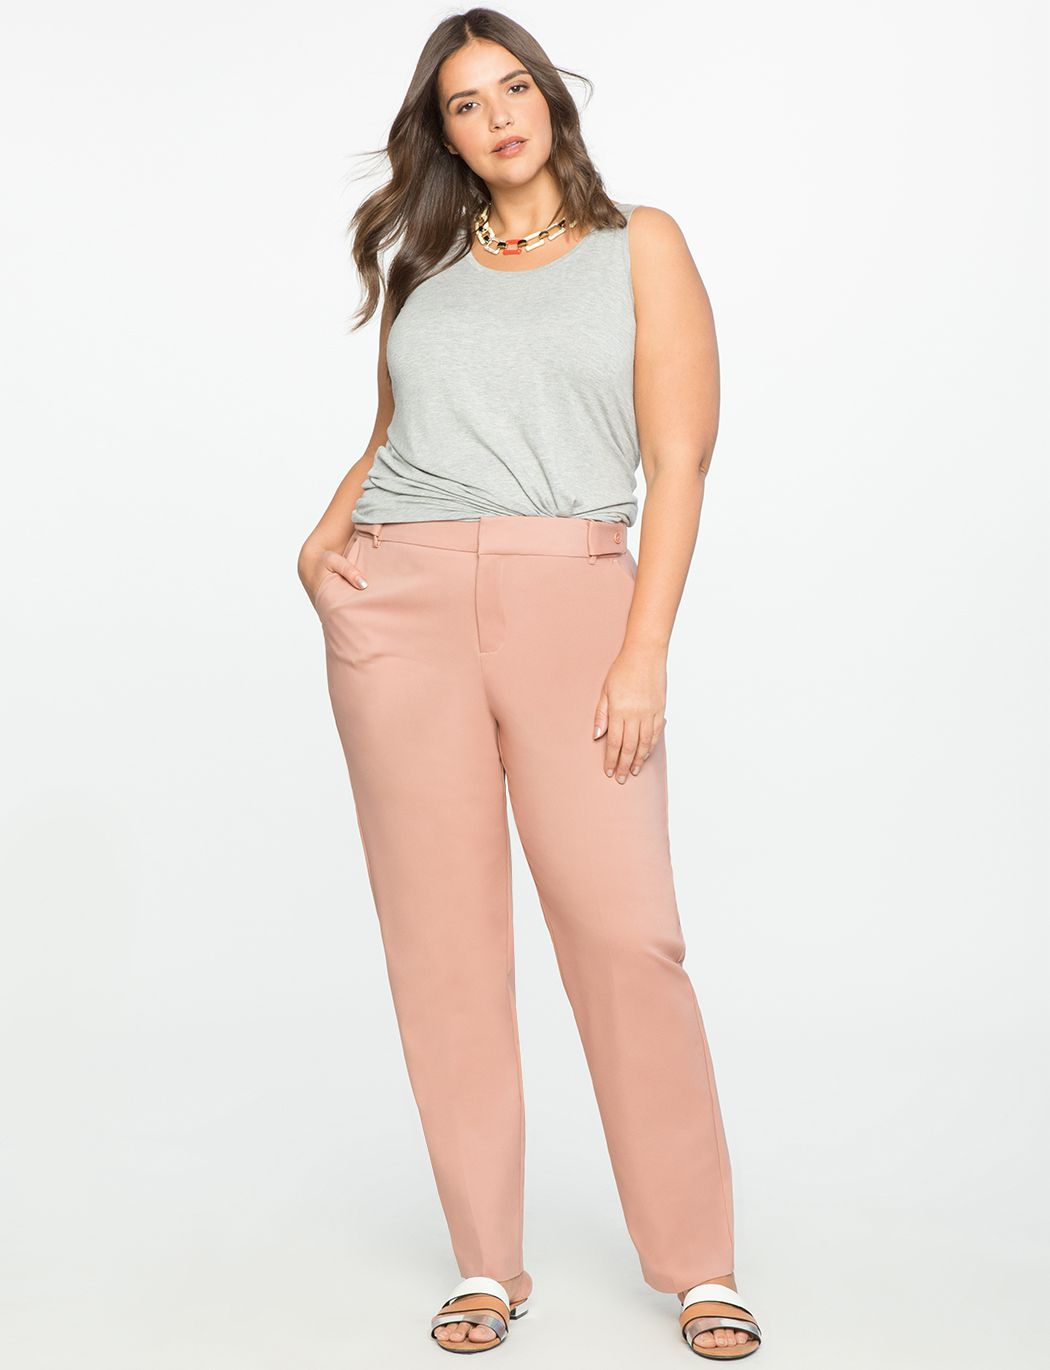 A model in pink pants and a gray tank top